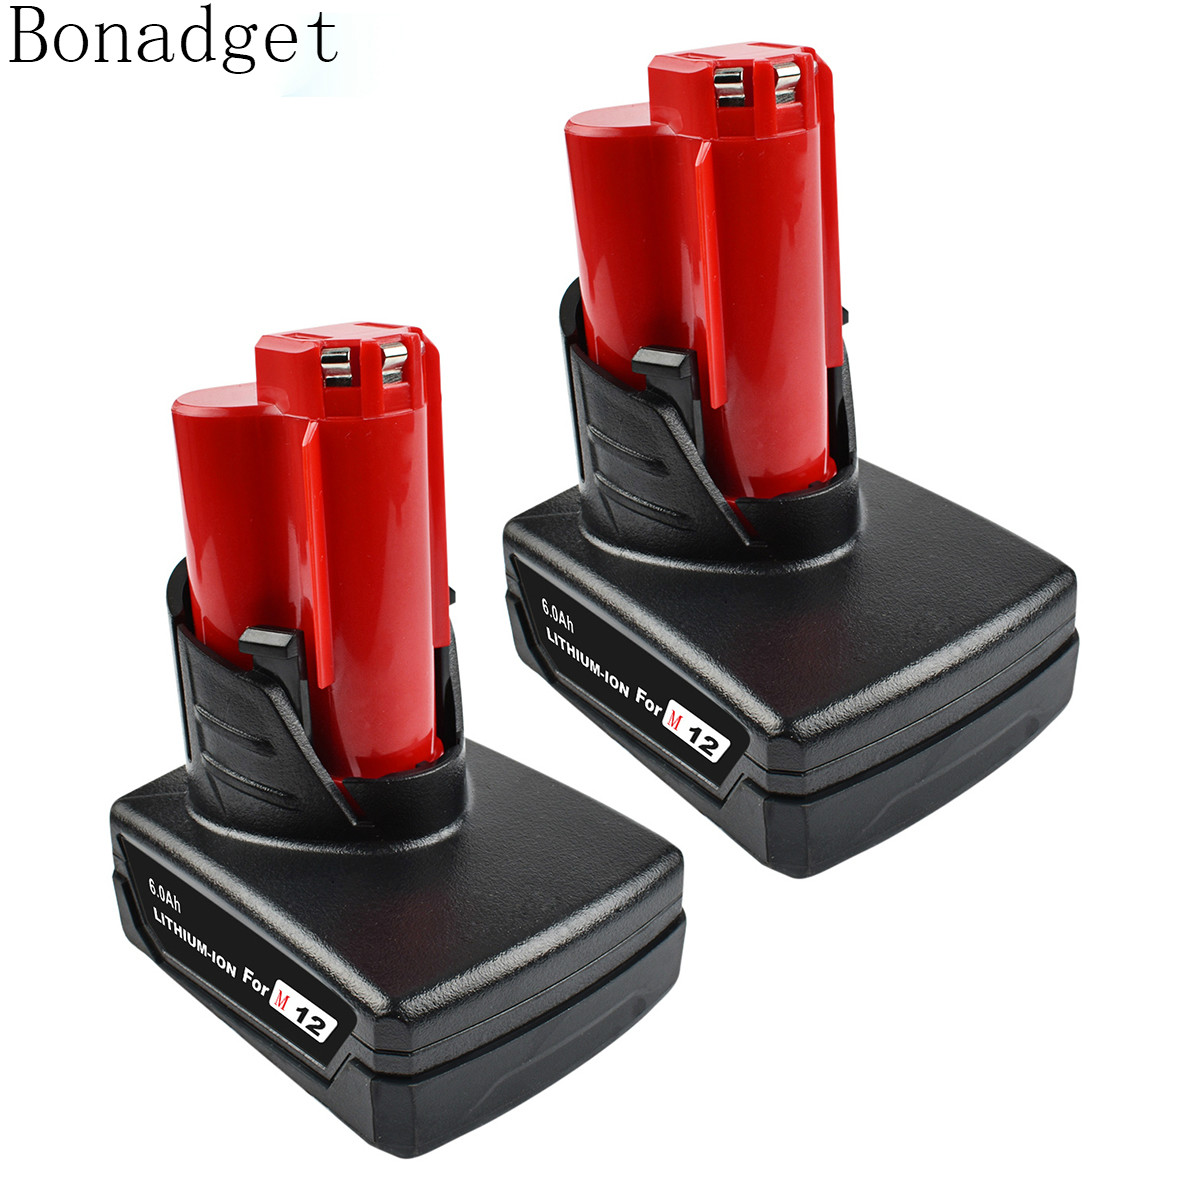 Bonadget Power Tools Battery For Milwaukee M12 12v  6000mah Power Tool Rechargeable Li-ion Battery Replacement Battery Backup